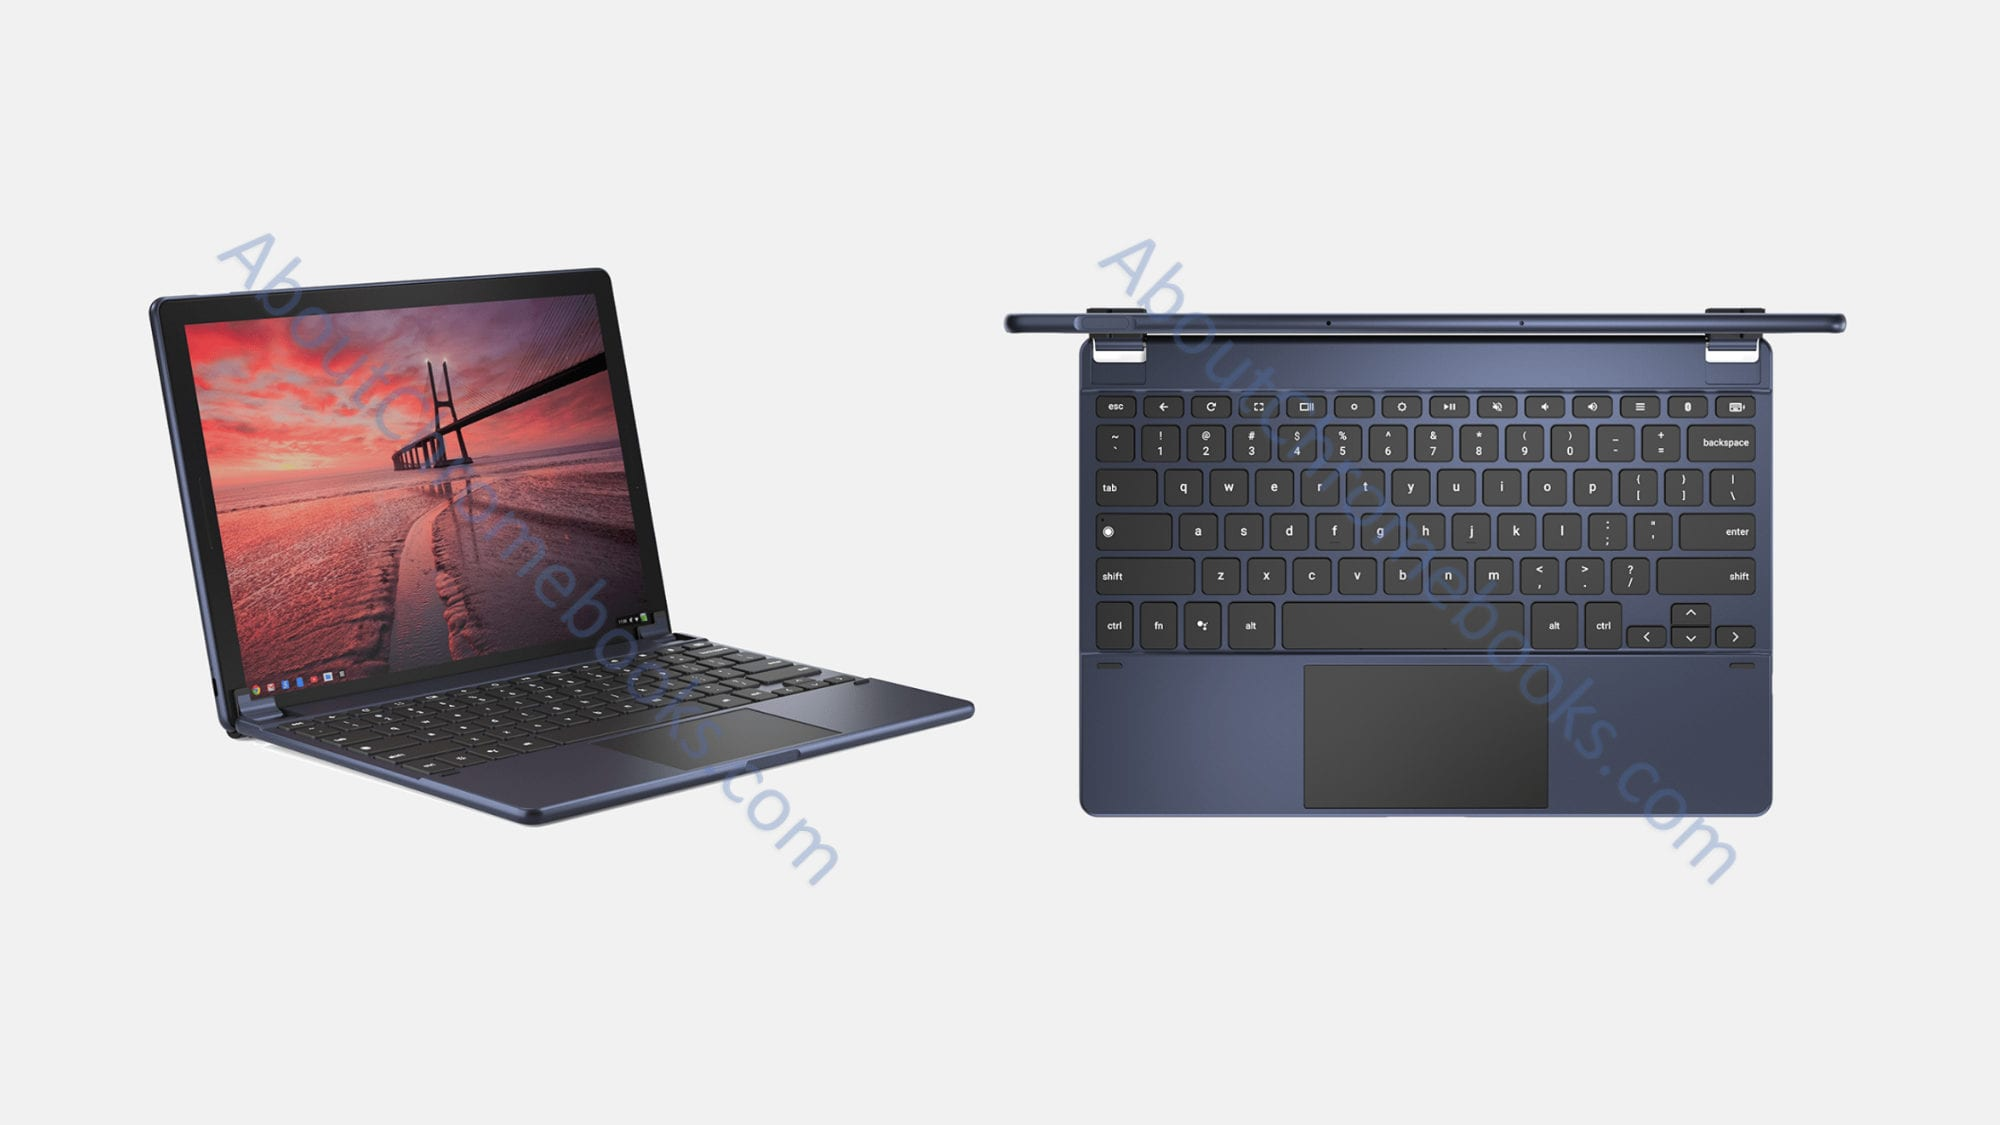 This Could Be The First Look At #madebyGoogle Chromebook Tablet 'Nocturne' With 2 Keyboards By Brydge